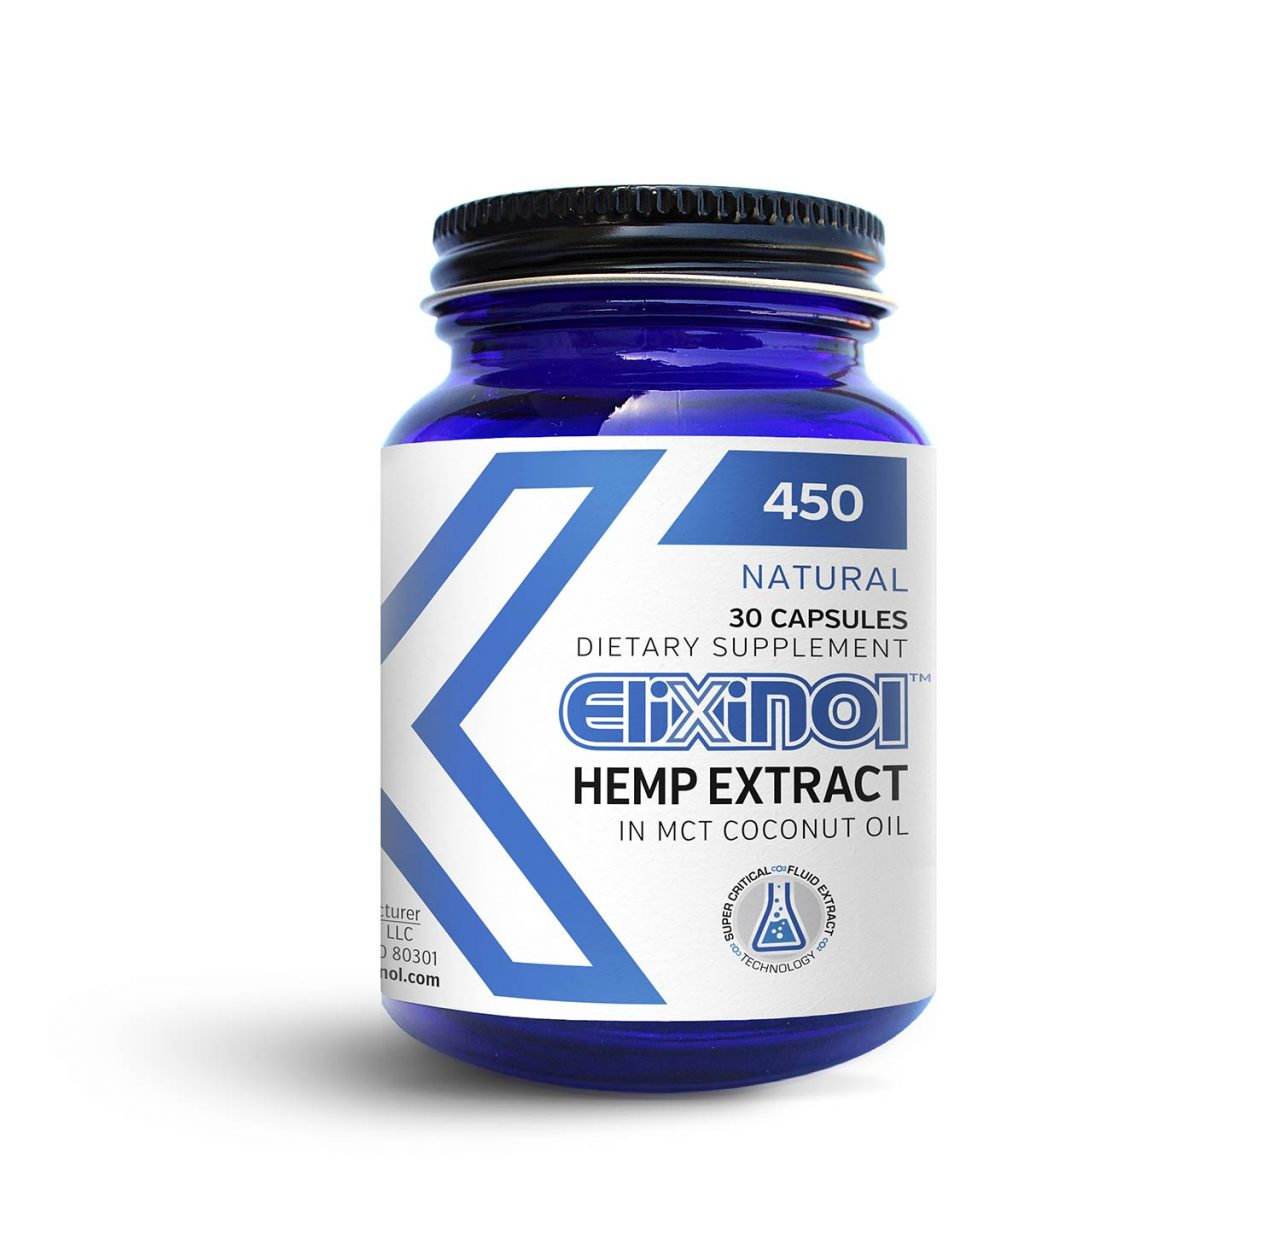 elixinol-cbd-hemp-oil-capsules-30-capsules-450mg-of-cbd